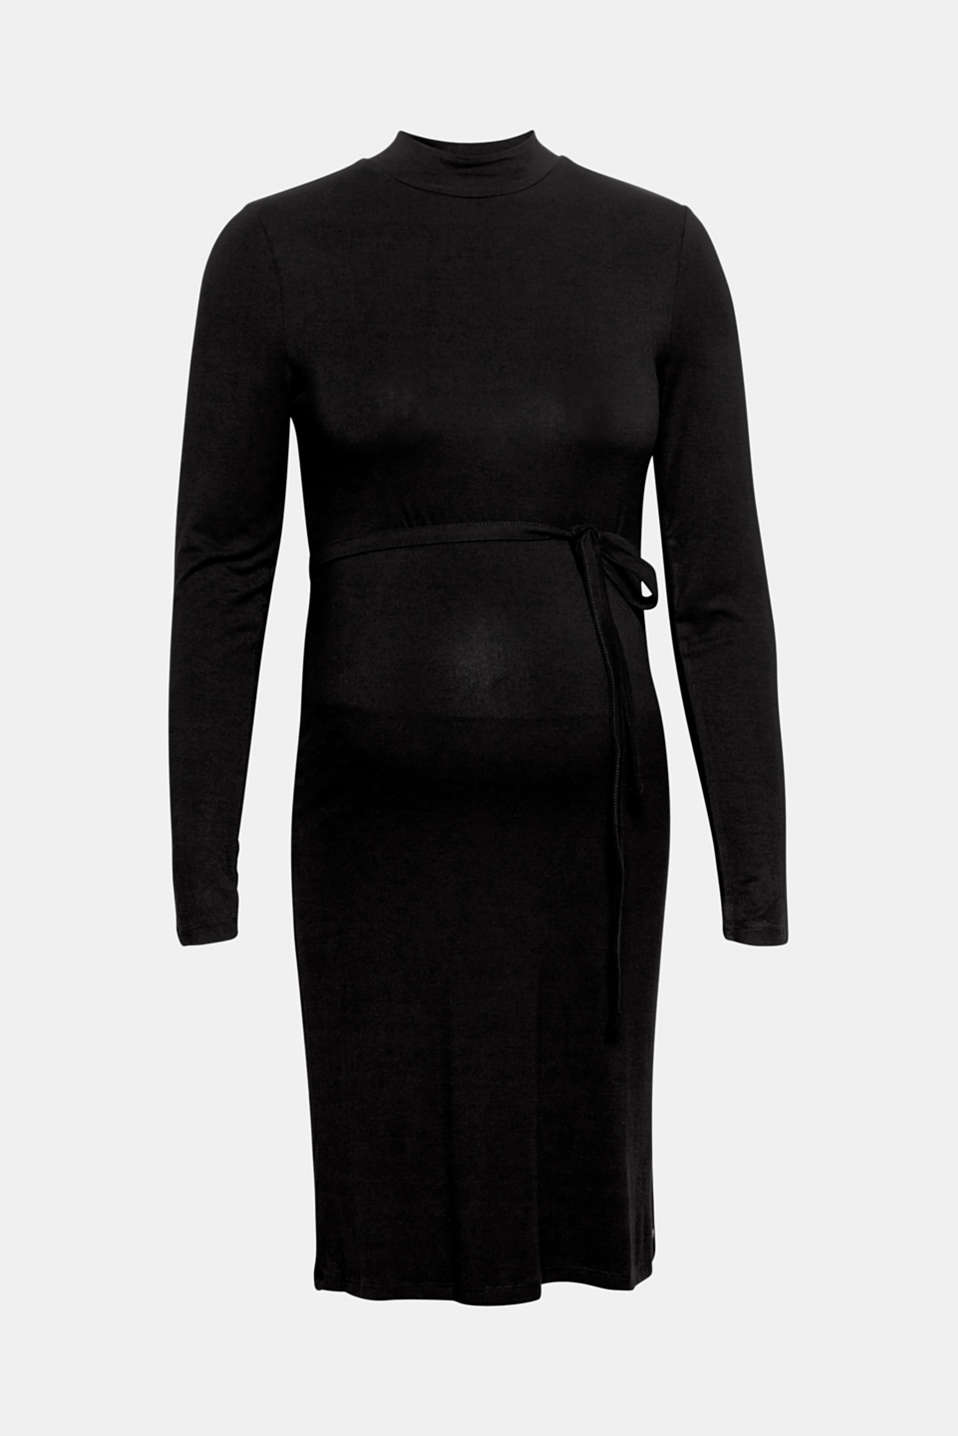 Stretch jersey dress with a stand-up collar, LCBLACK, detail image number 6